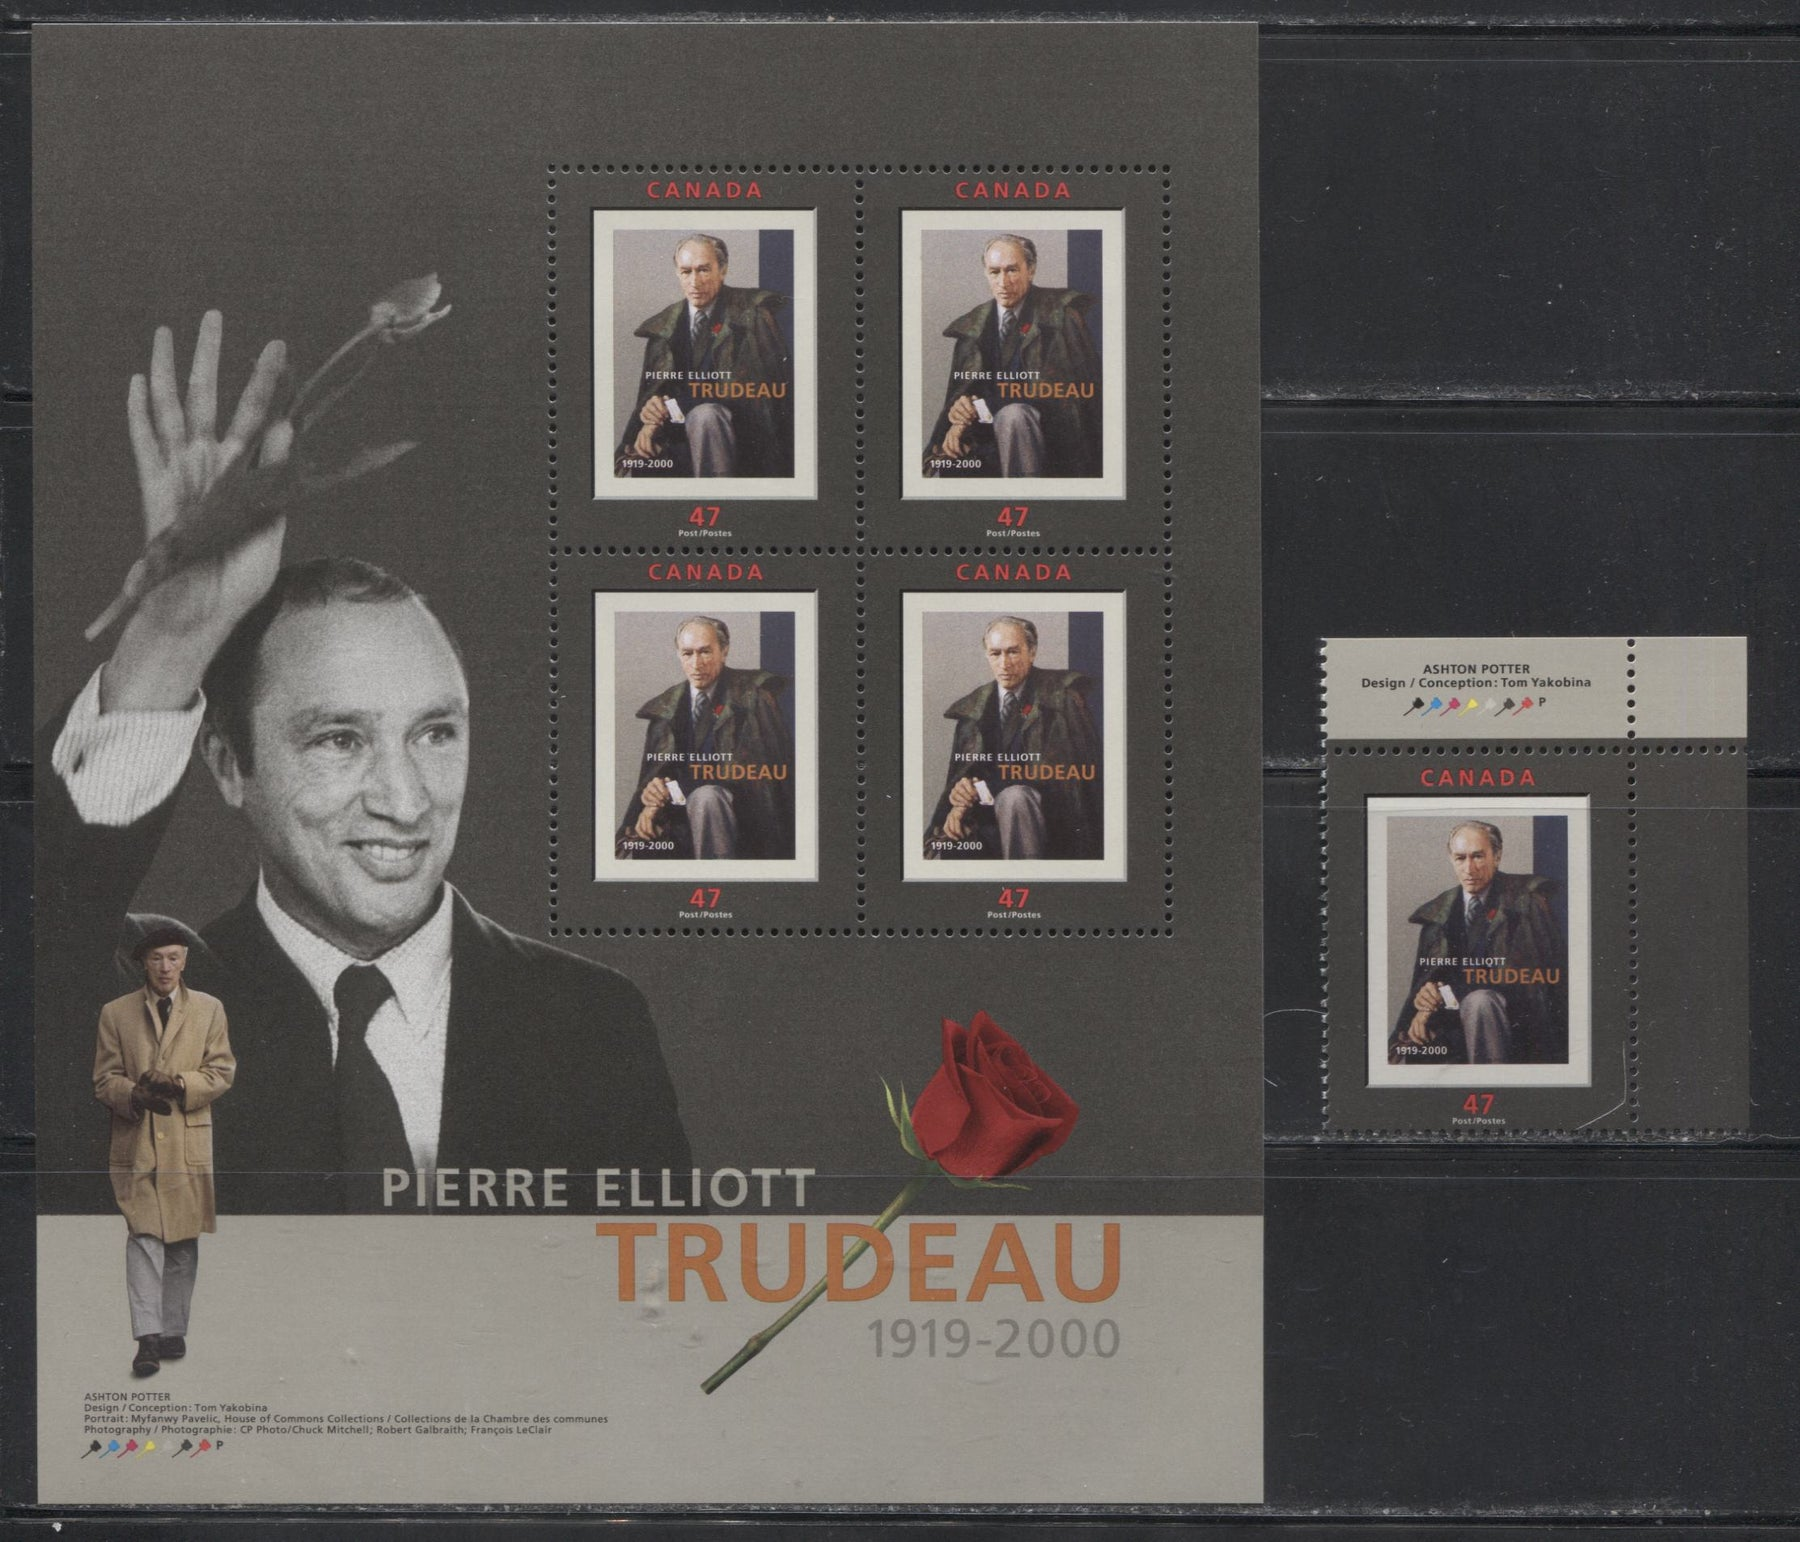 Canada #1909-a 47c-$1.88 Multicolored, 2001 Pierre Elliot Trudeau Issue, VFNH Examples Of A Sheet Single and Souvenir Sheet.